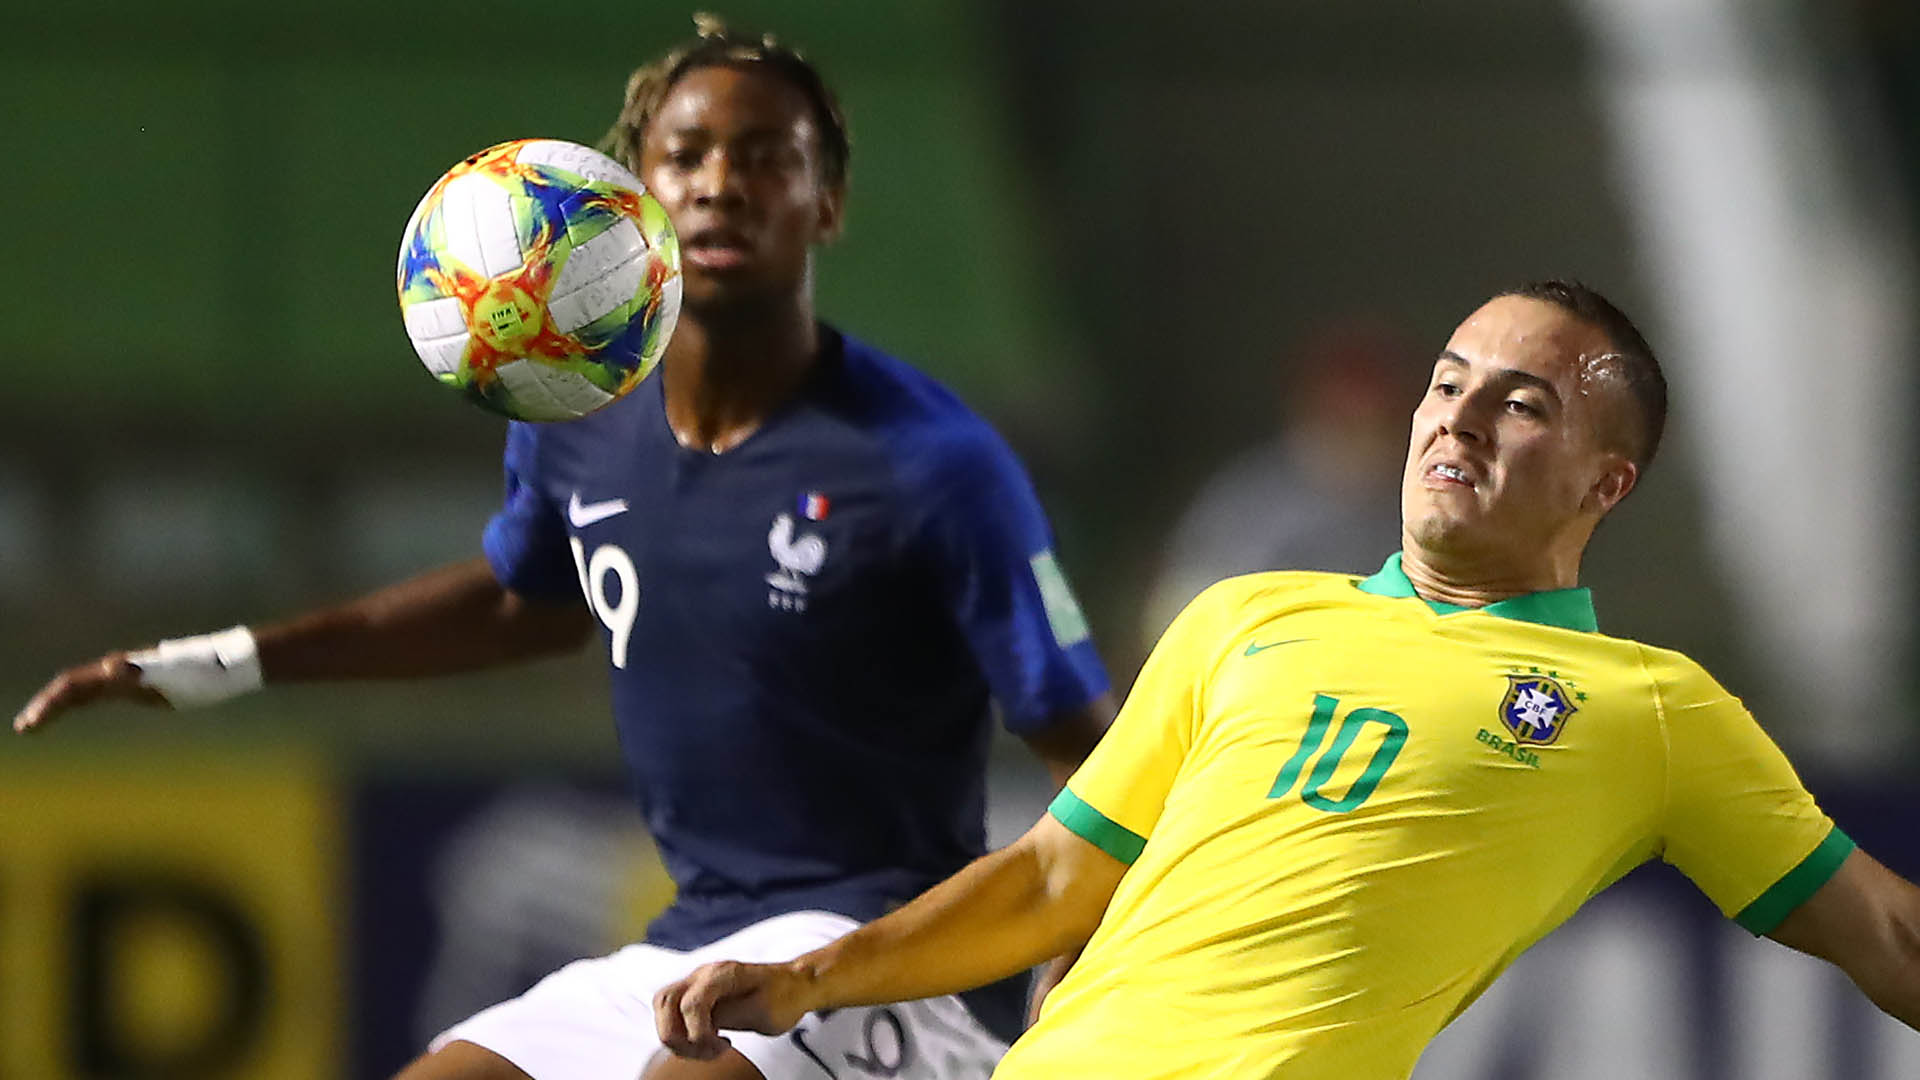 Peglow of Brazil in action during the FIFA U-17 World Cup Brazil 2019 semi-final match between France and Brazil at Estadio Bezerrao on November 14, 2019 in Brasilia, Brazil. (Photo by Martin Rose - FIFA/FIFA via Getty Images)